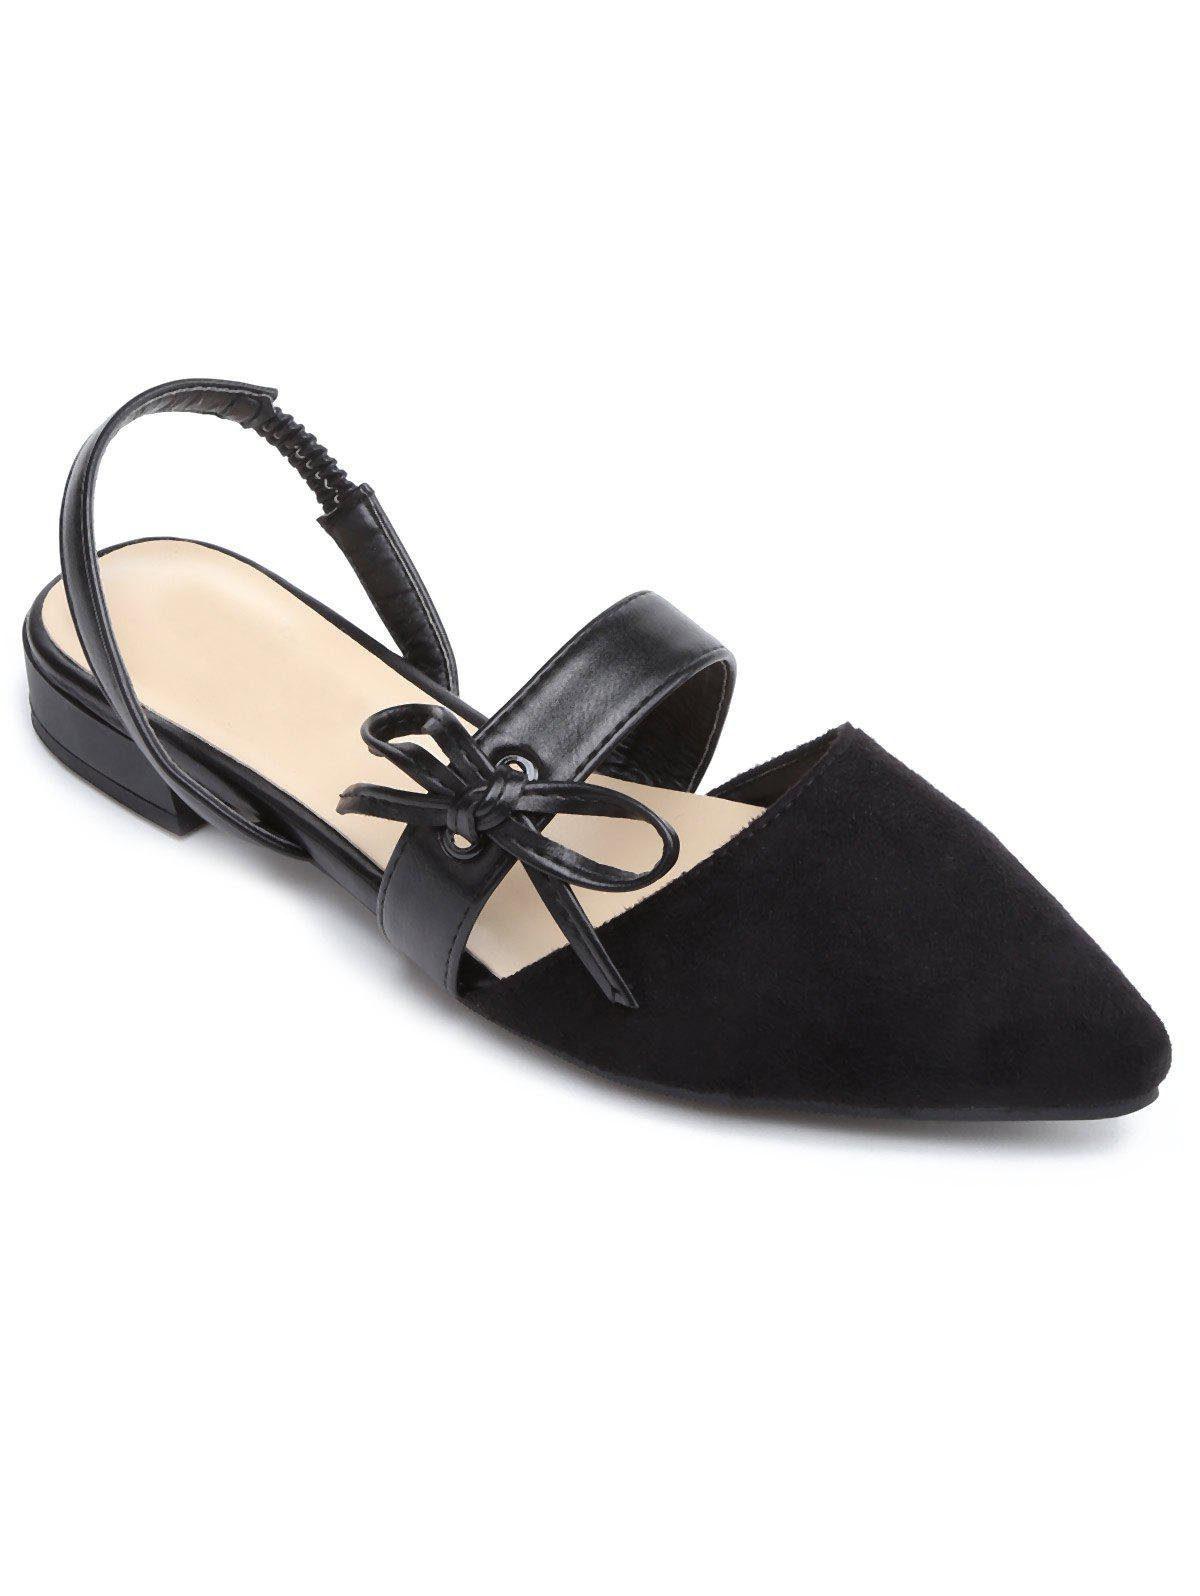 Bow Slingbacks Point Toe Flat Shoes - BLACK 36